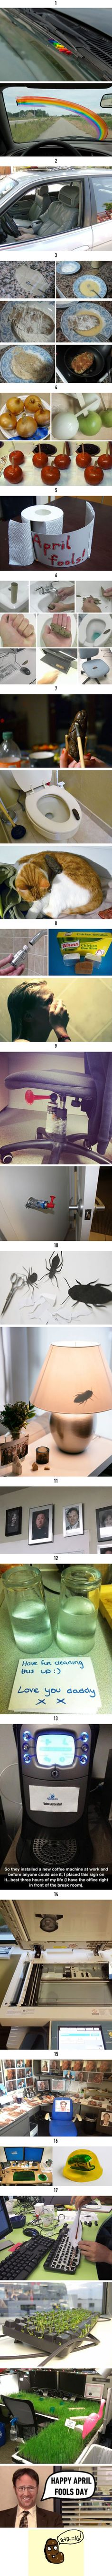 17 April Fools' Day ideas that are actually unforgivable 17 April Fools' Day ideas that are actually unforgivable - - pranks Good Pranks, Funny Pranks, Funny Jokes, Hilarious, Funny Commercials, 9gag Funny, Awesome Pranks, Kids Pranks, Text Pranks